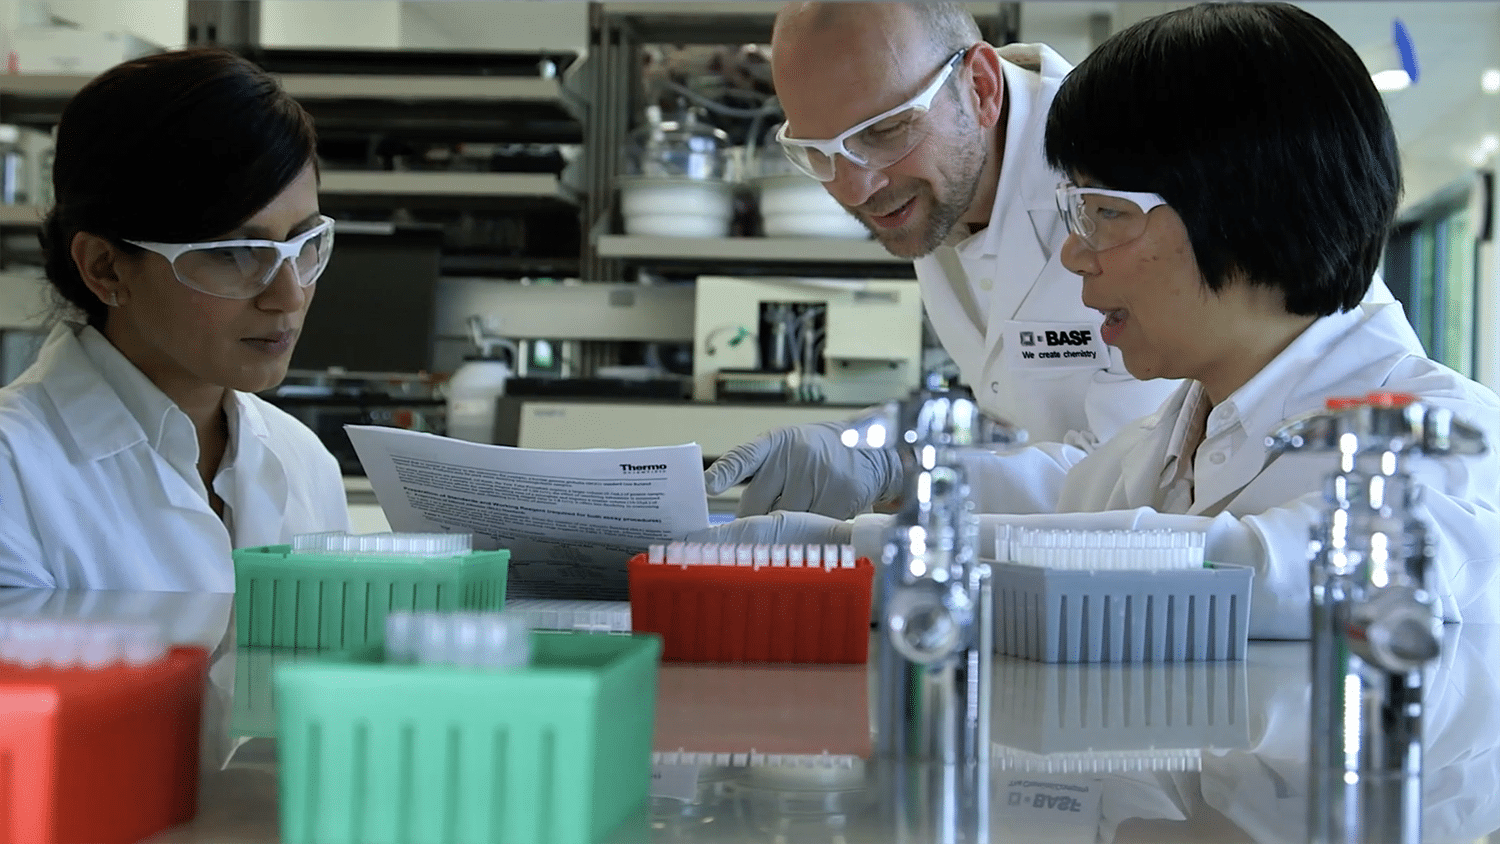 Three BASF researchers work in a lab, all wearing white lab coats.